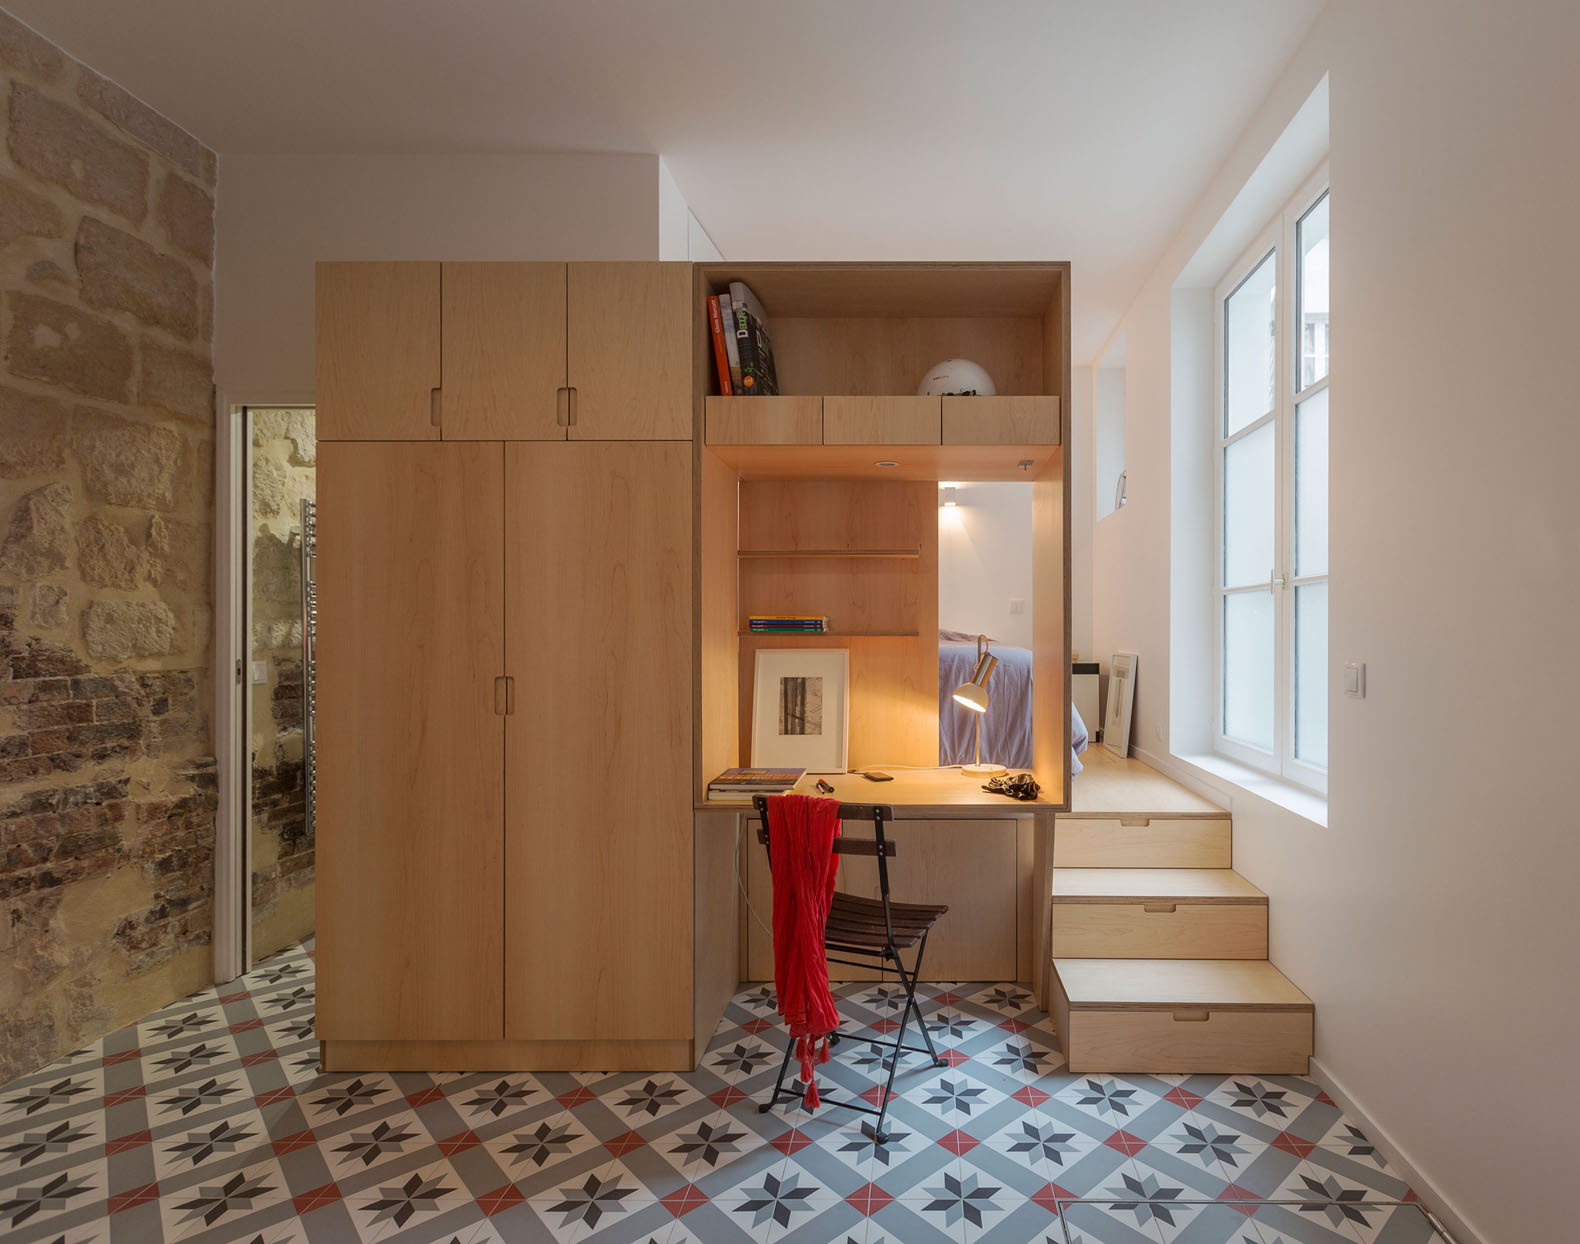 17th century parisian apartment with a hidden slurry pit transformed into an open plan studio